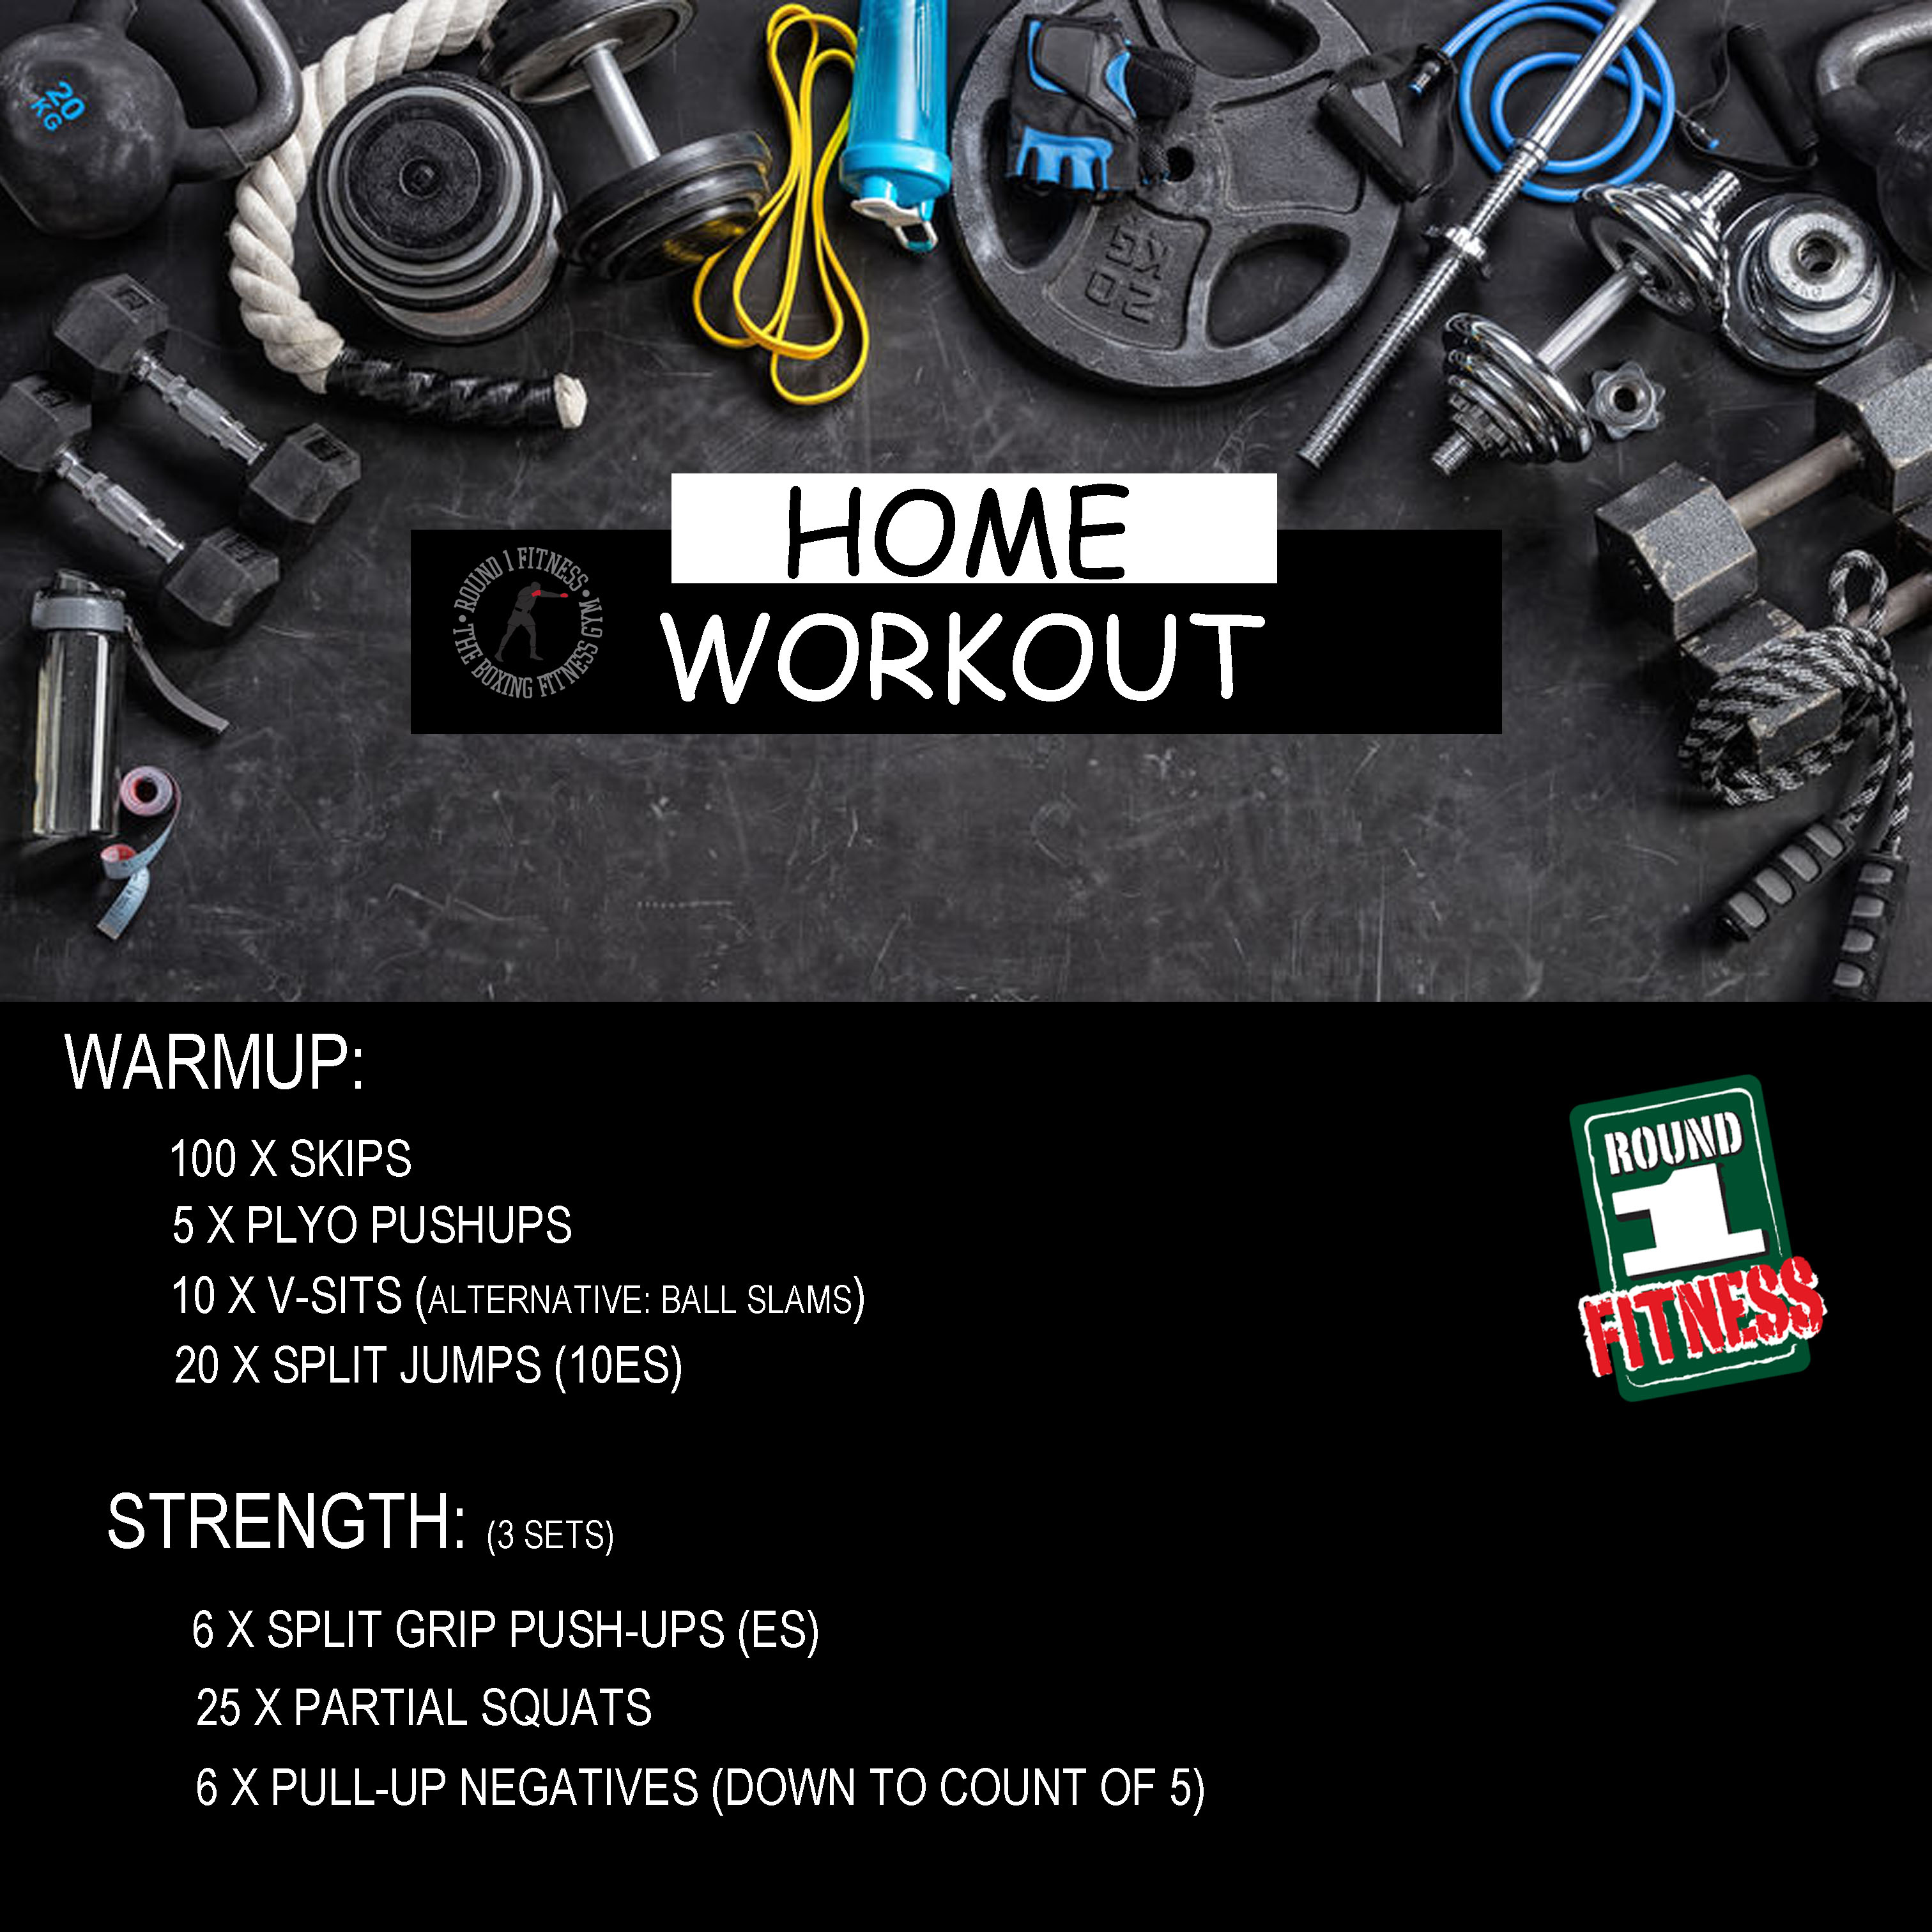 COVID Lockdown#3 – Round 1 @ Home – Workout 4, April 27th 2021